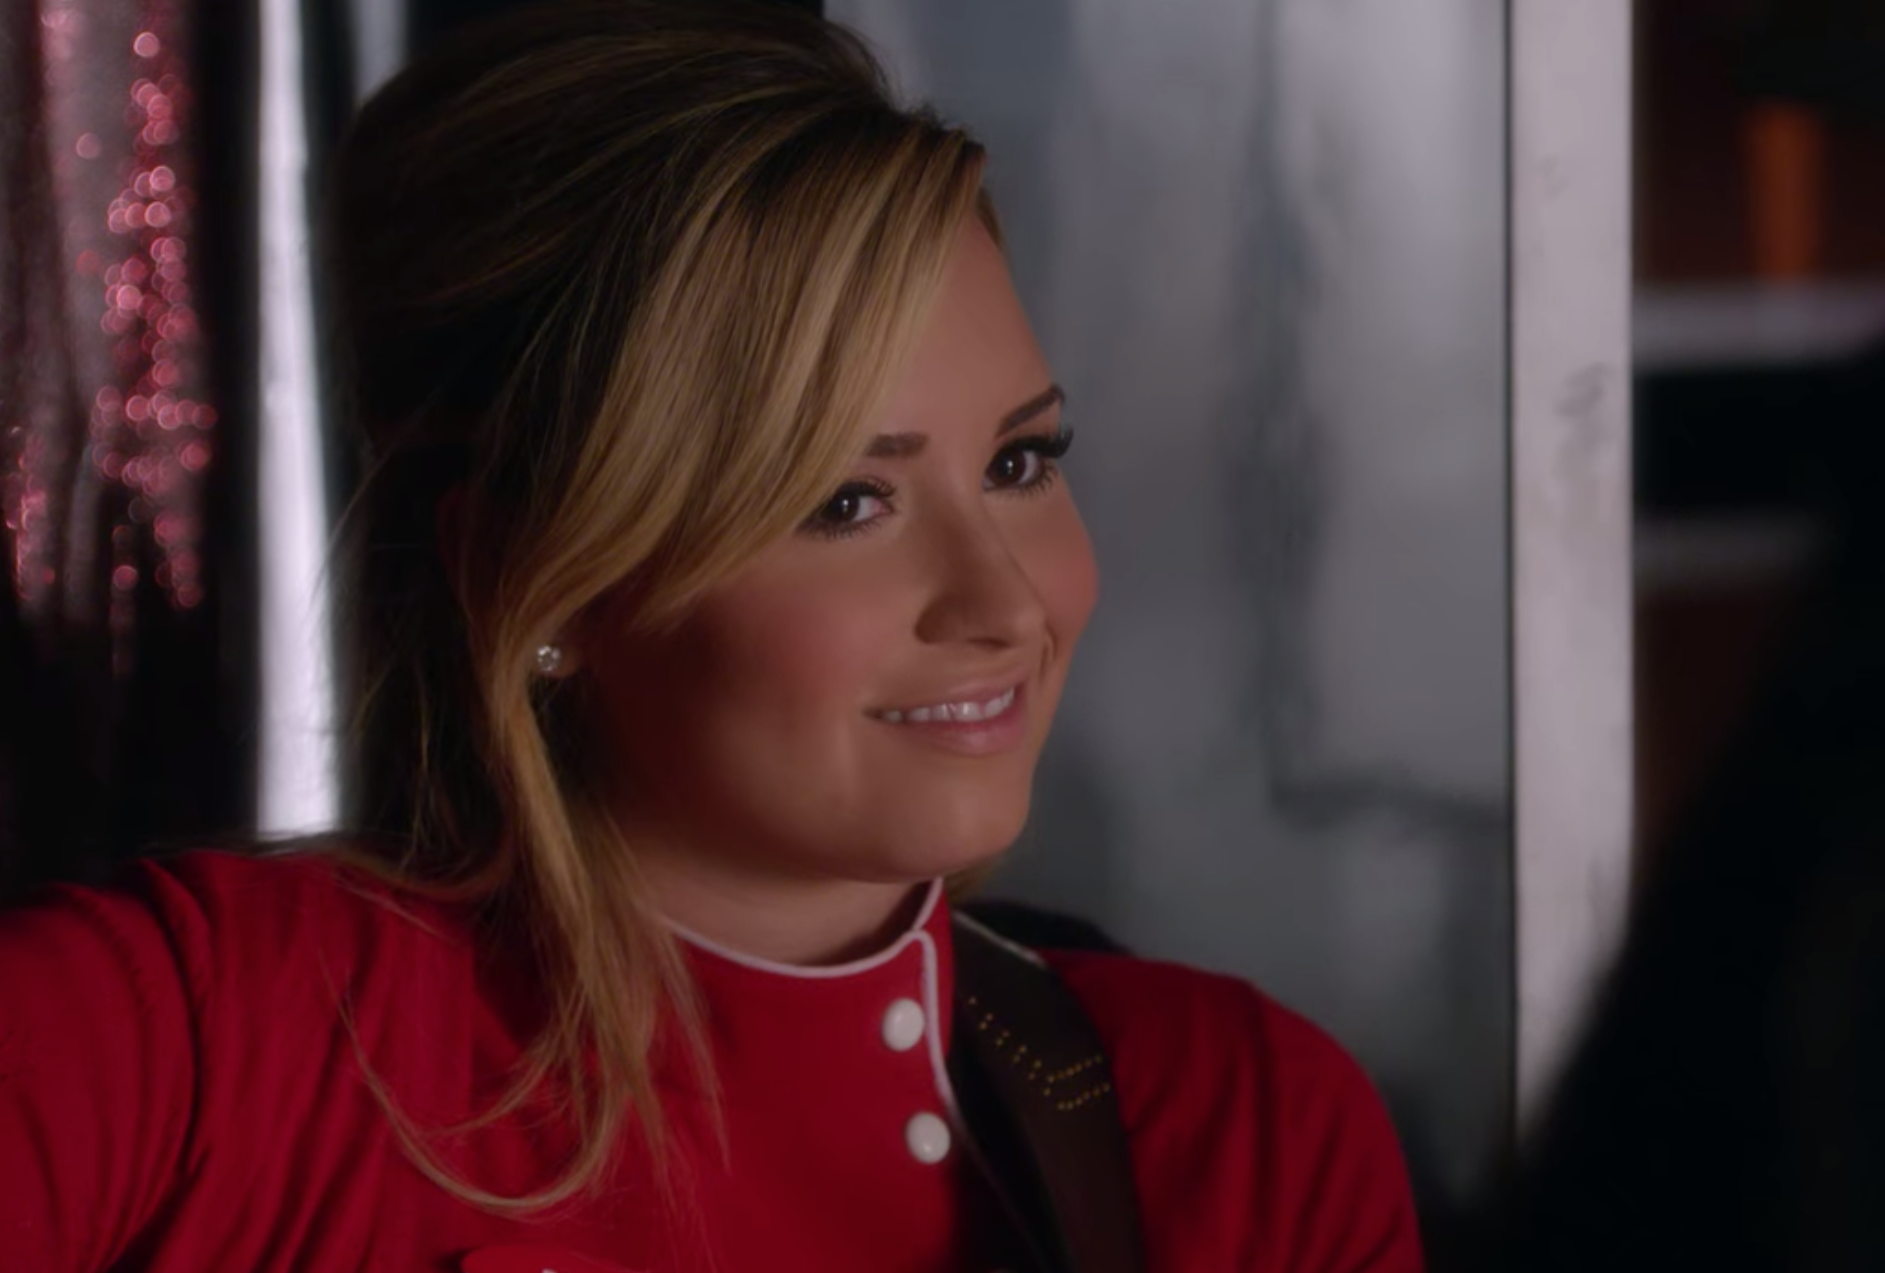 Dani, wearing her red and white waitress uniform, smiles softly at Santana Lopez.